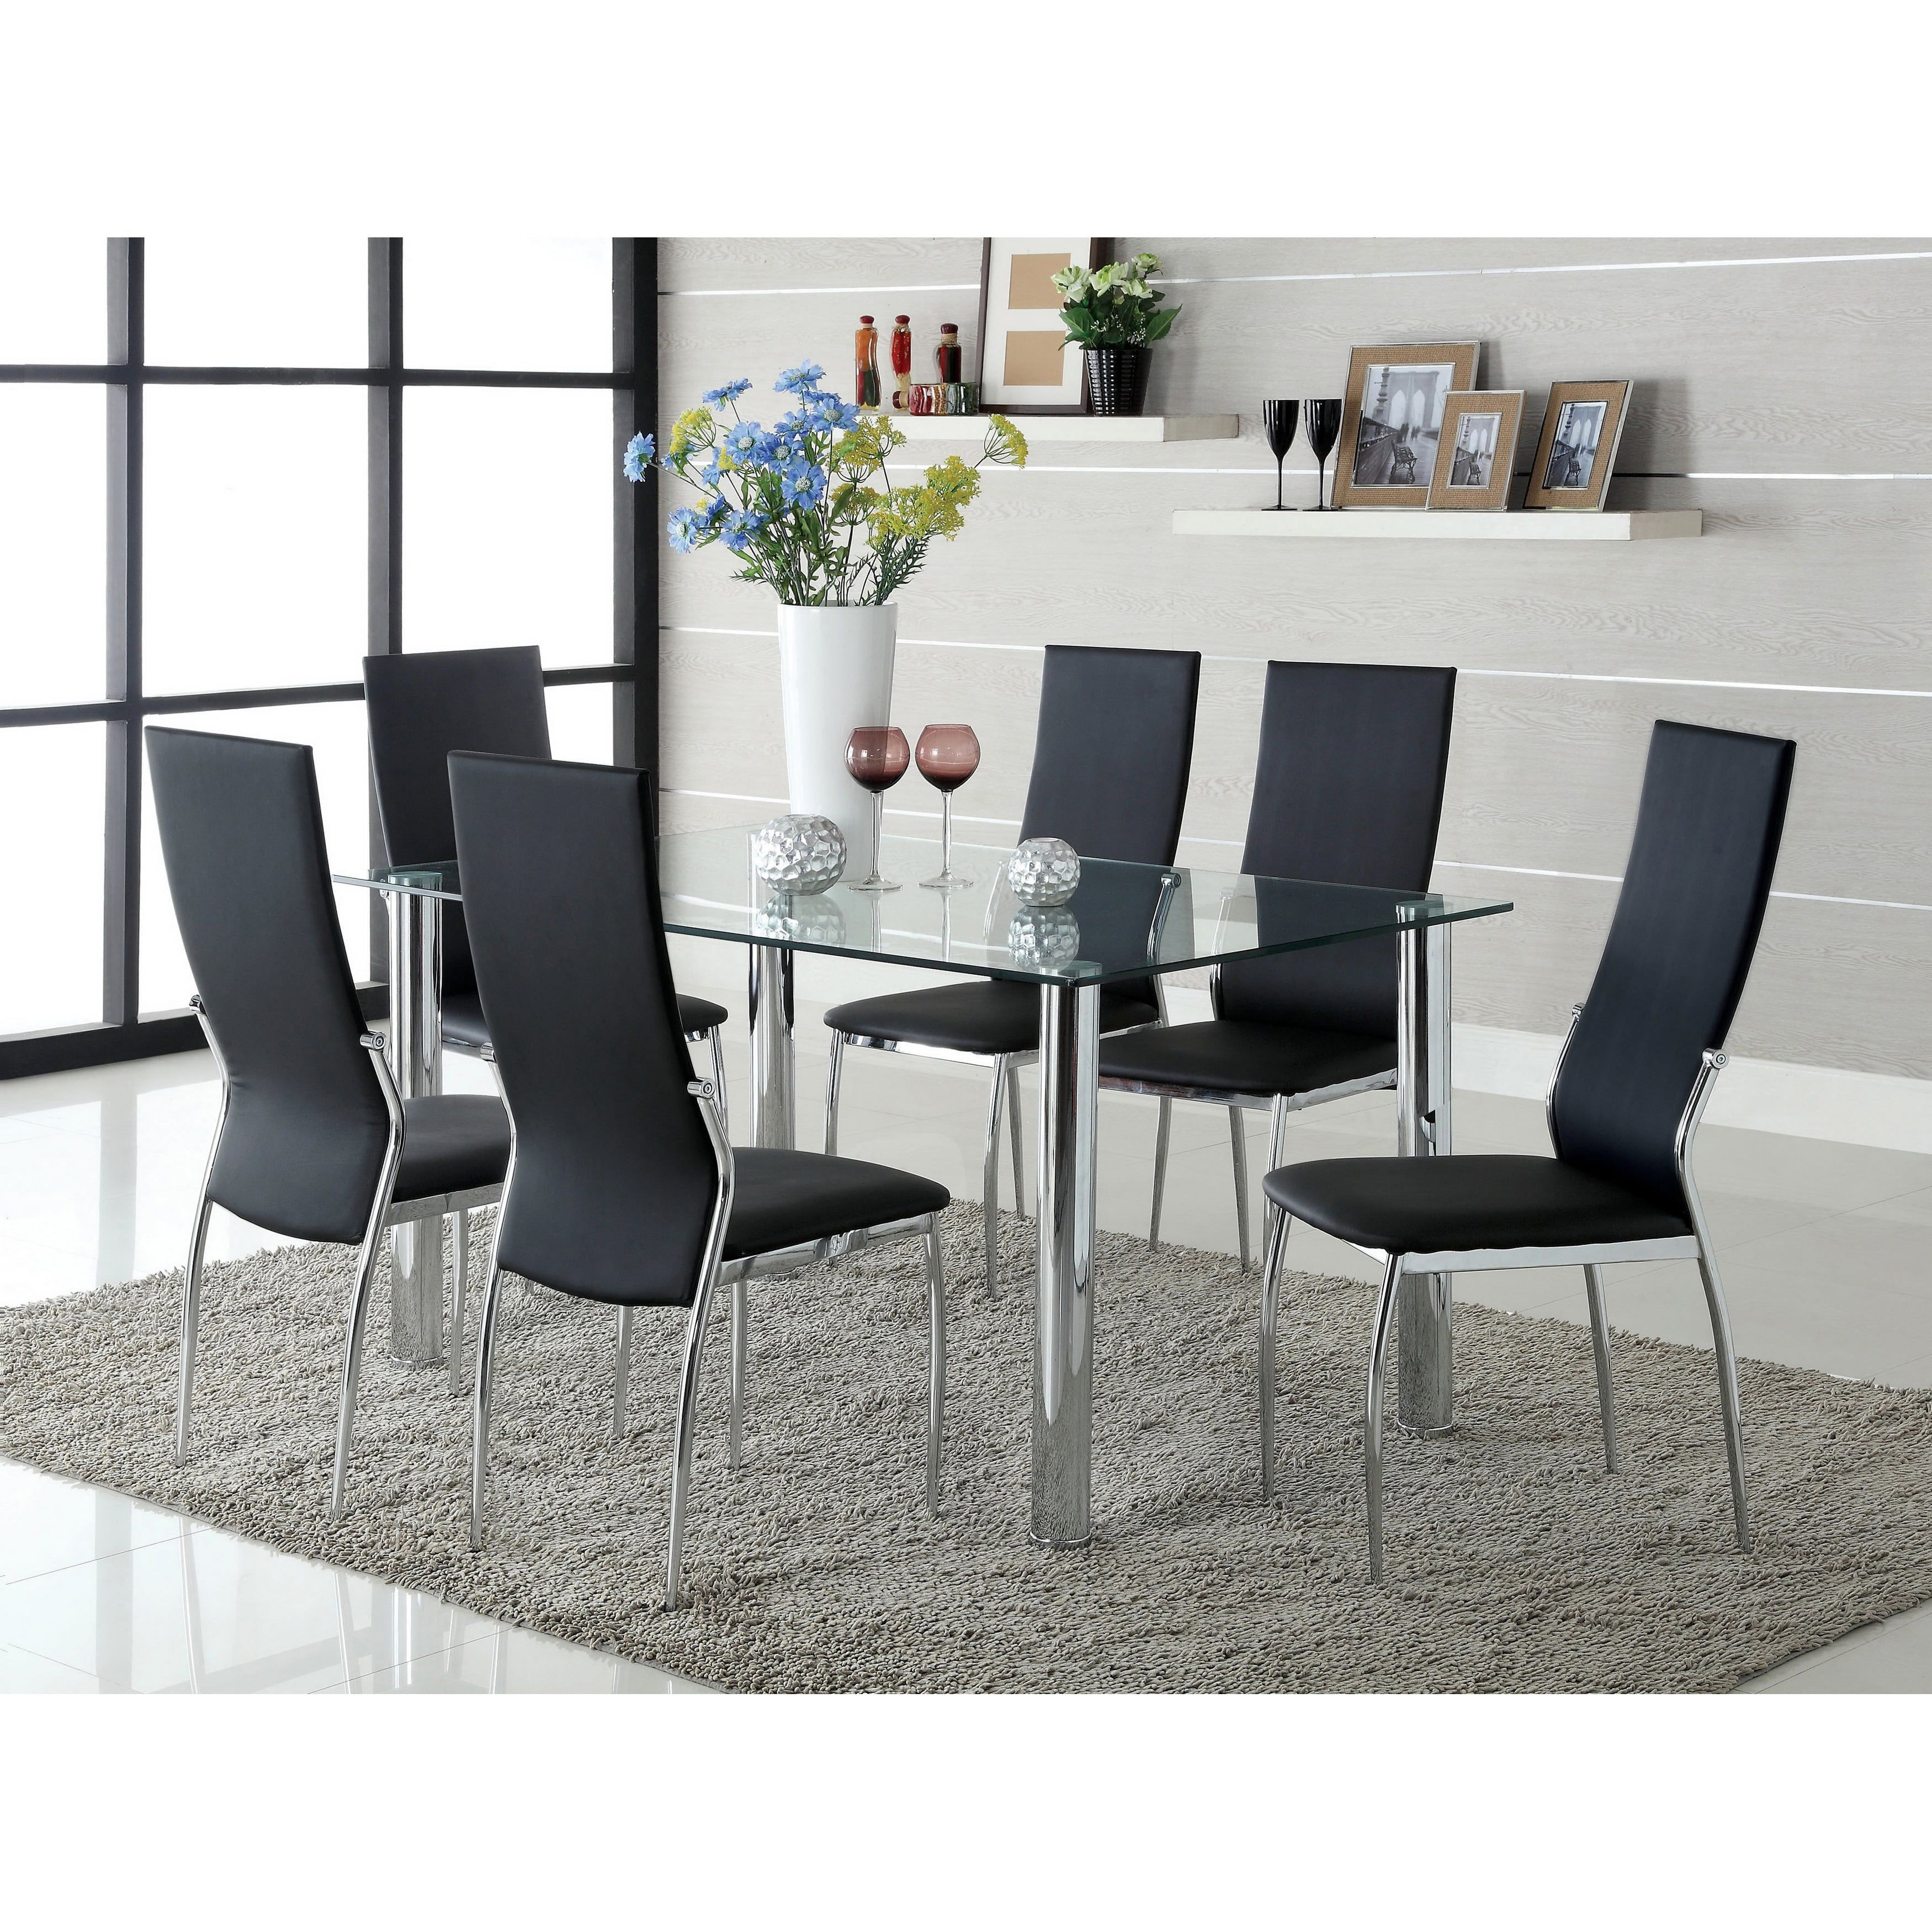 Attractive Furniture Of America Duarte Modern Leatherette Dining Chairs (Set Of    Overstock™ Shopping   Great Deals On Furniture Of America Dining Chairs